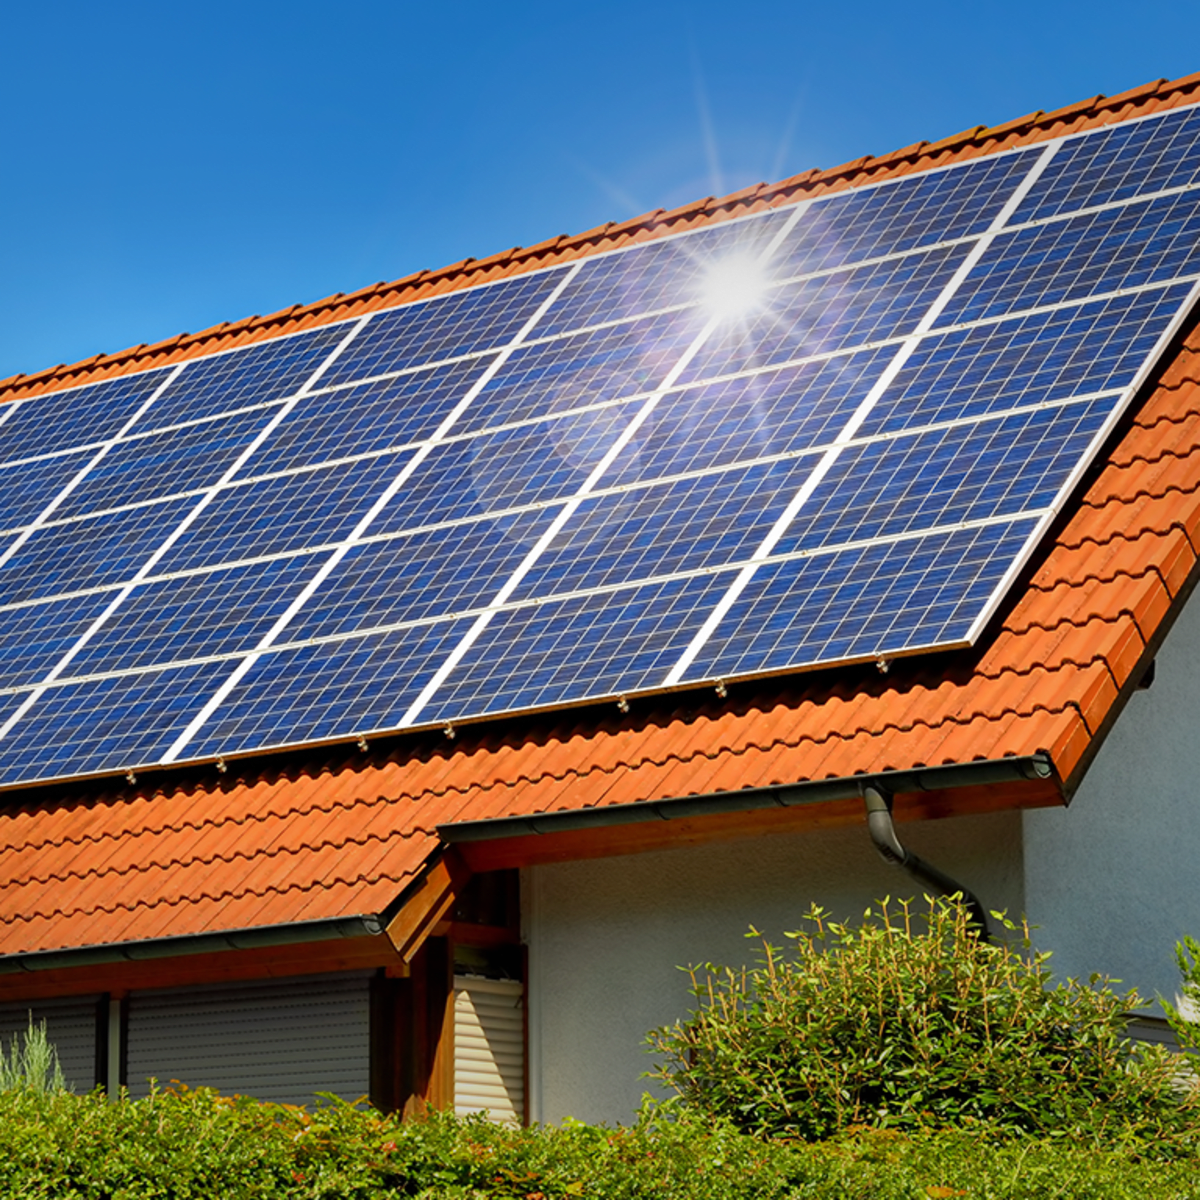 How Much To Install Solar Panels On Home